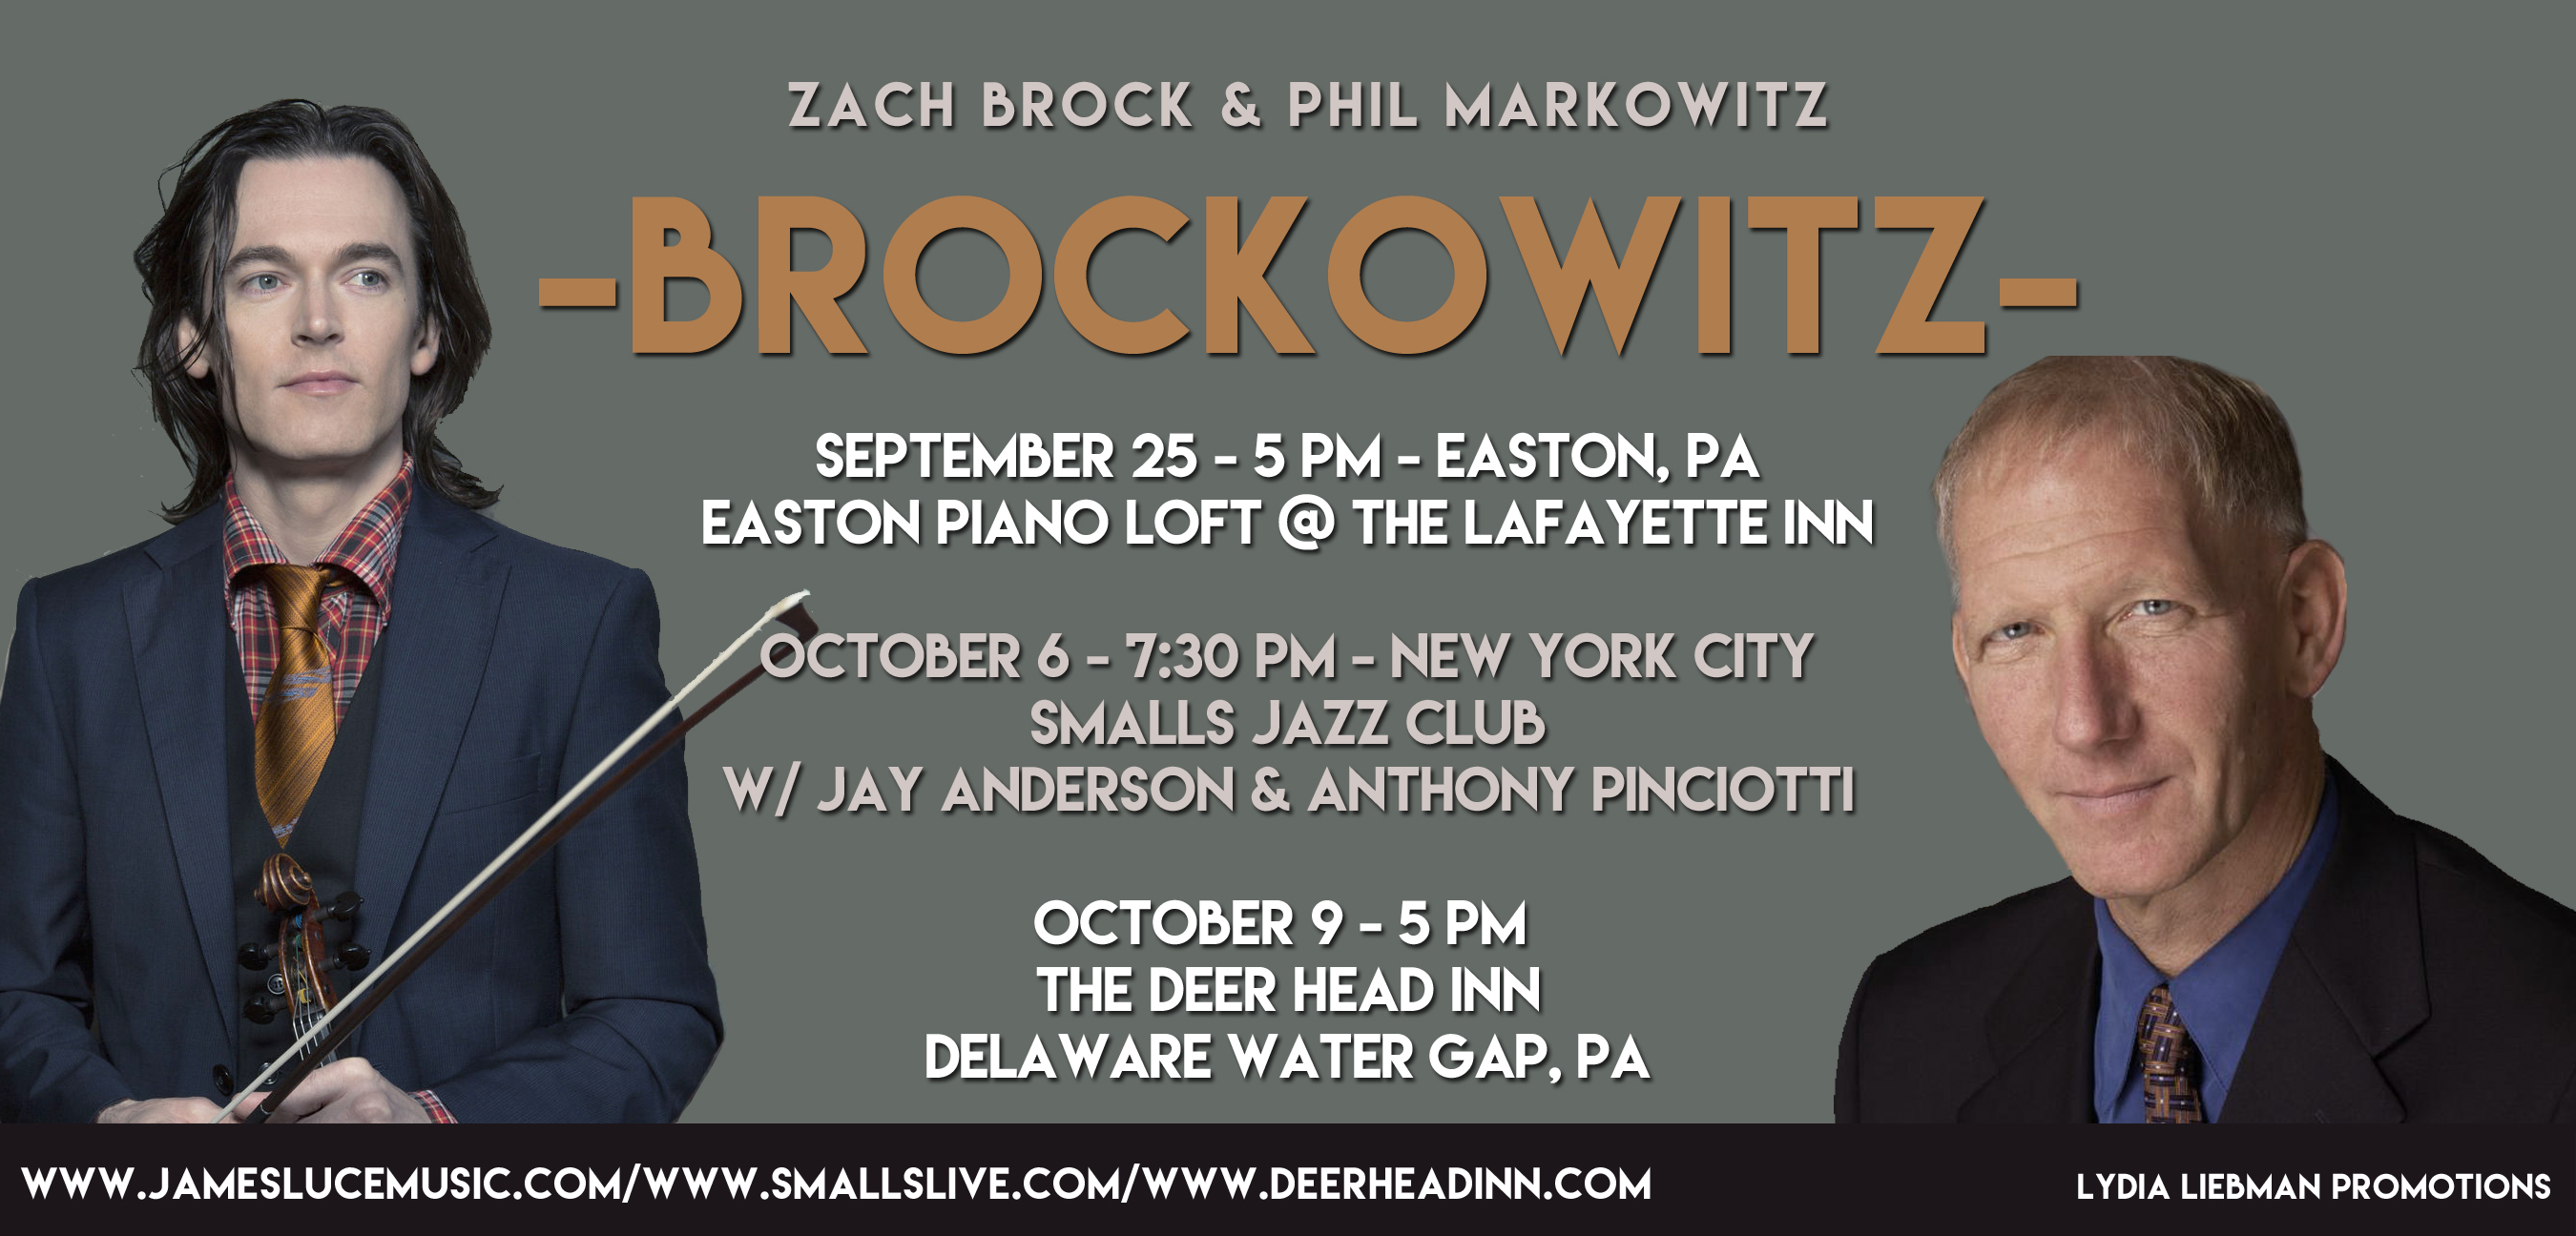 3 Nights of Brockowitz: Zach Brock & Phil Markowitz to perform in NY and PA